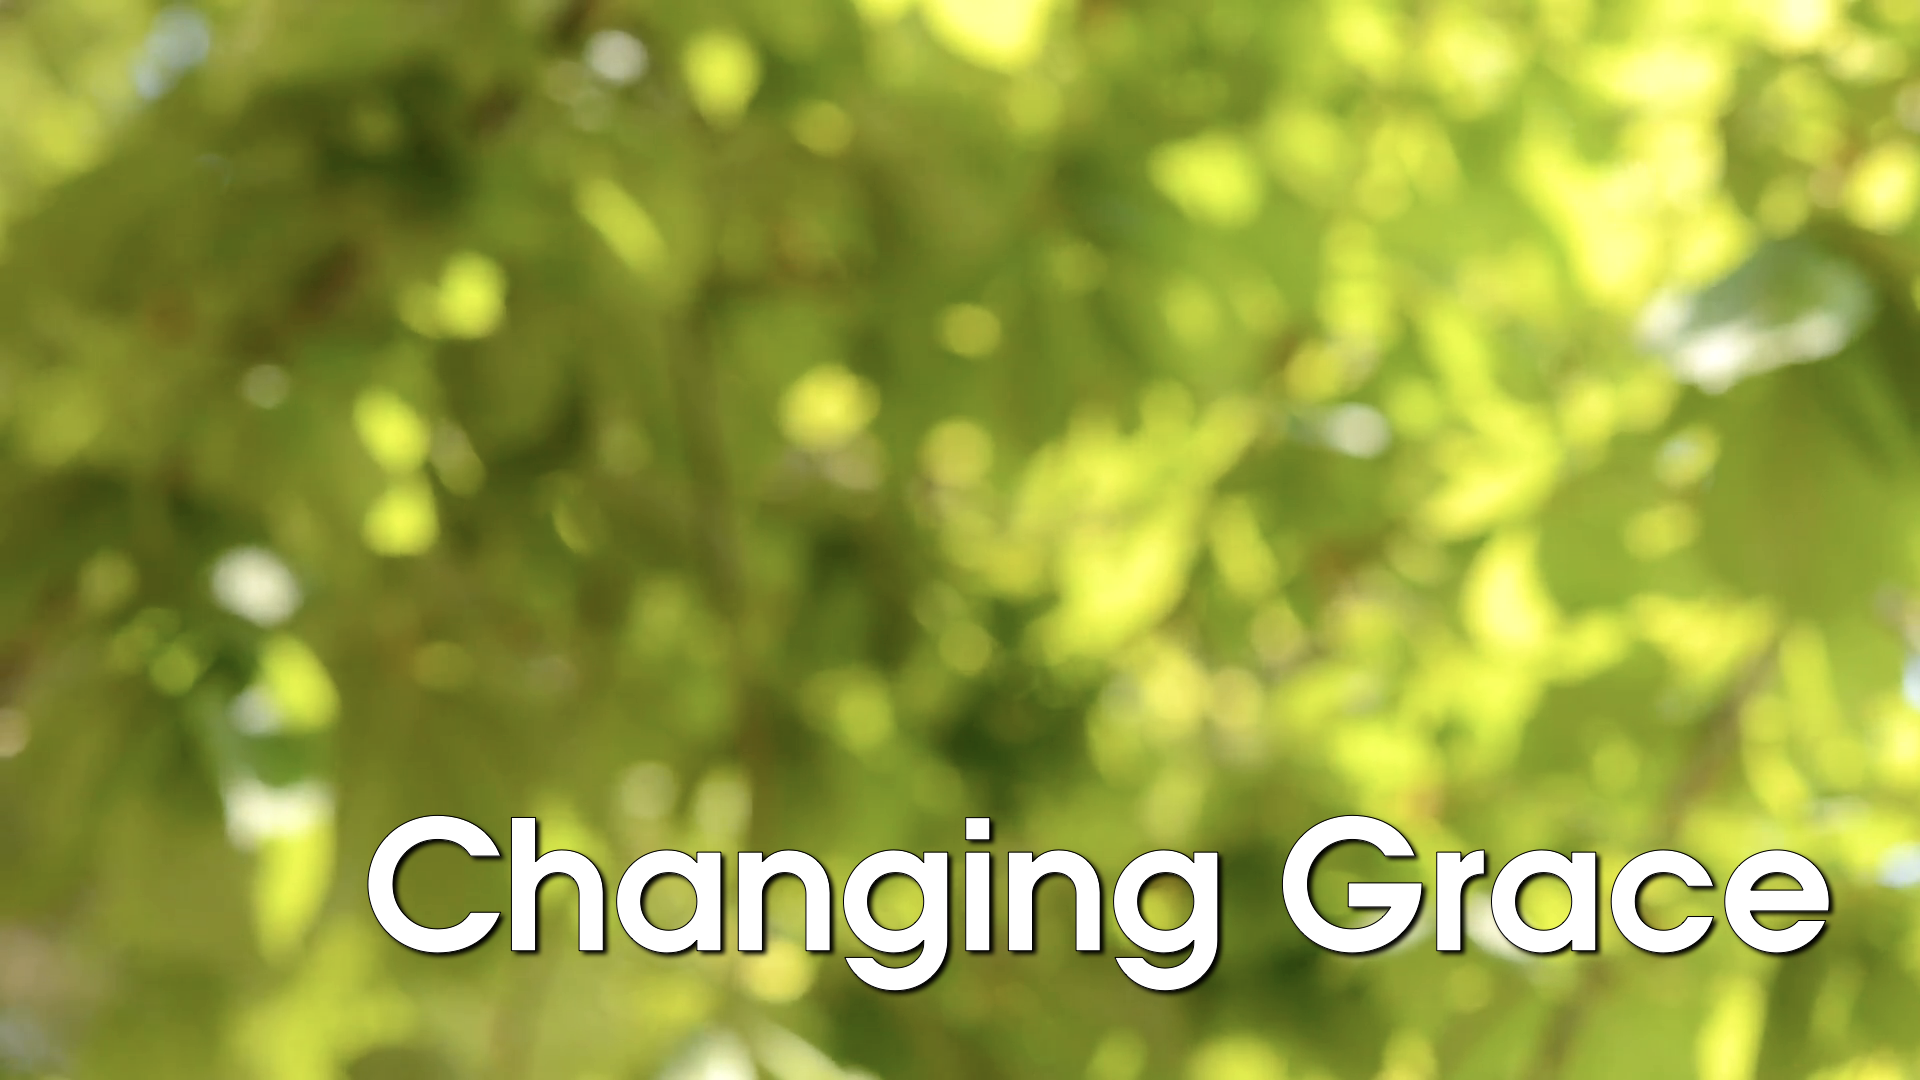 CHANGING GRACE.HD.001.png